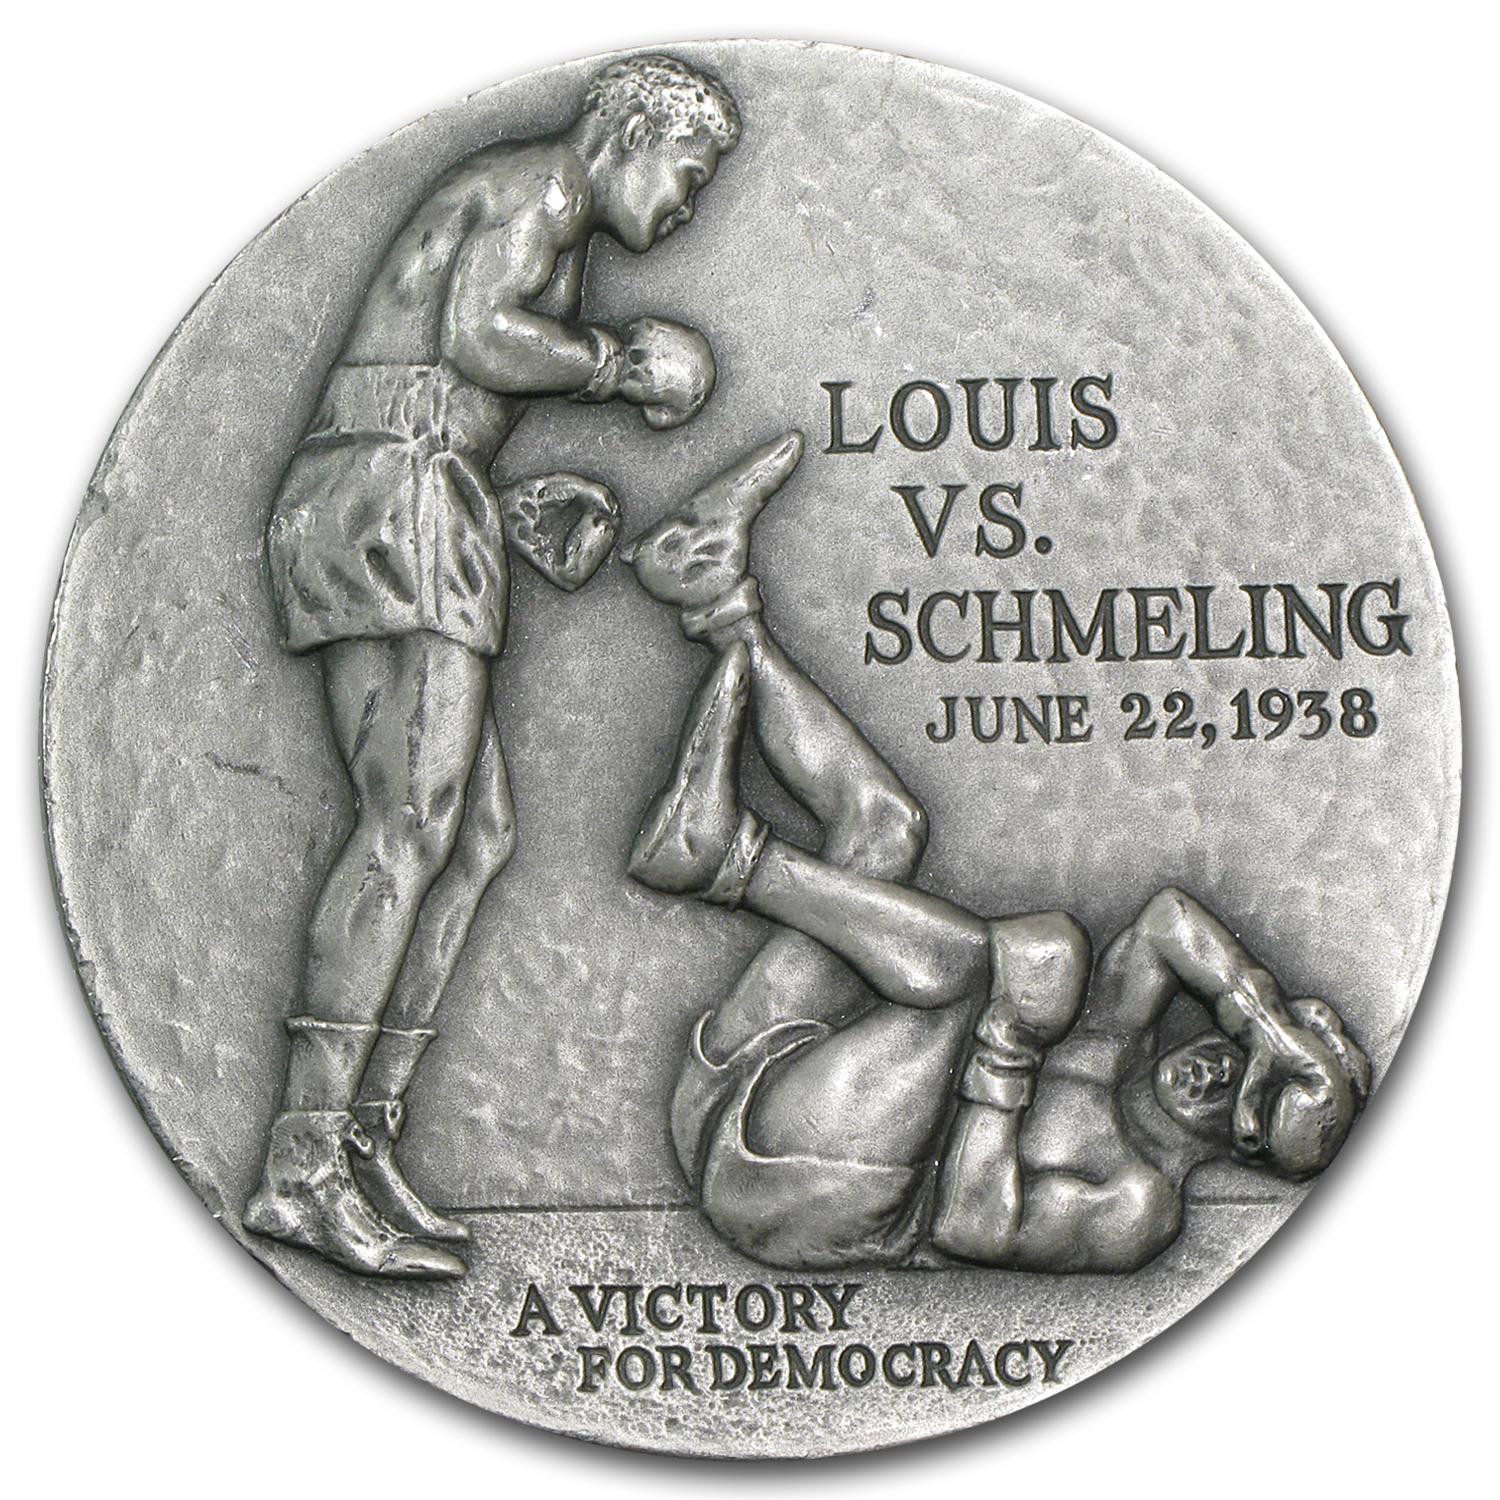 4.98 oz Silver Rounds - Joe Louis